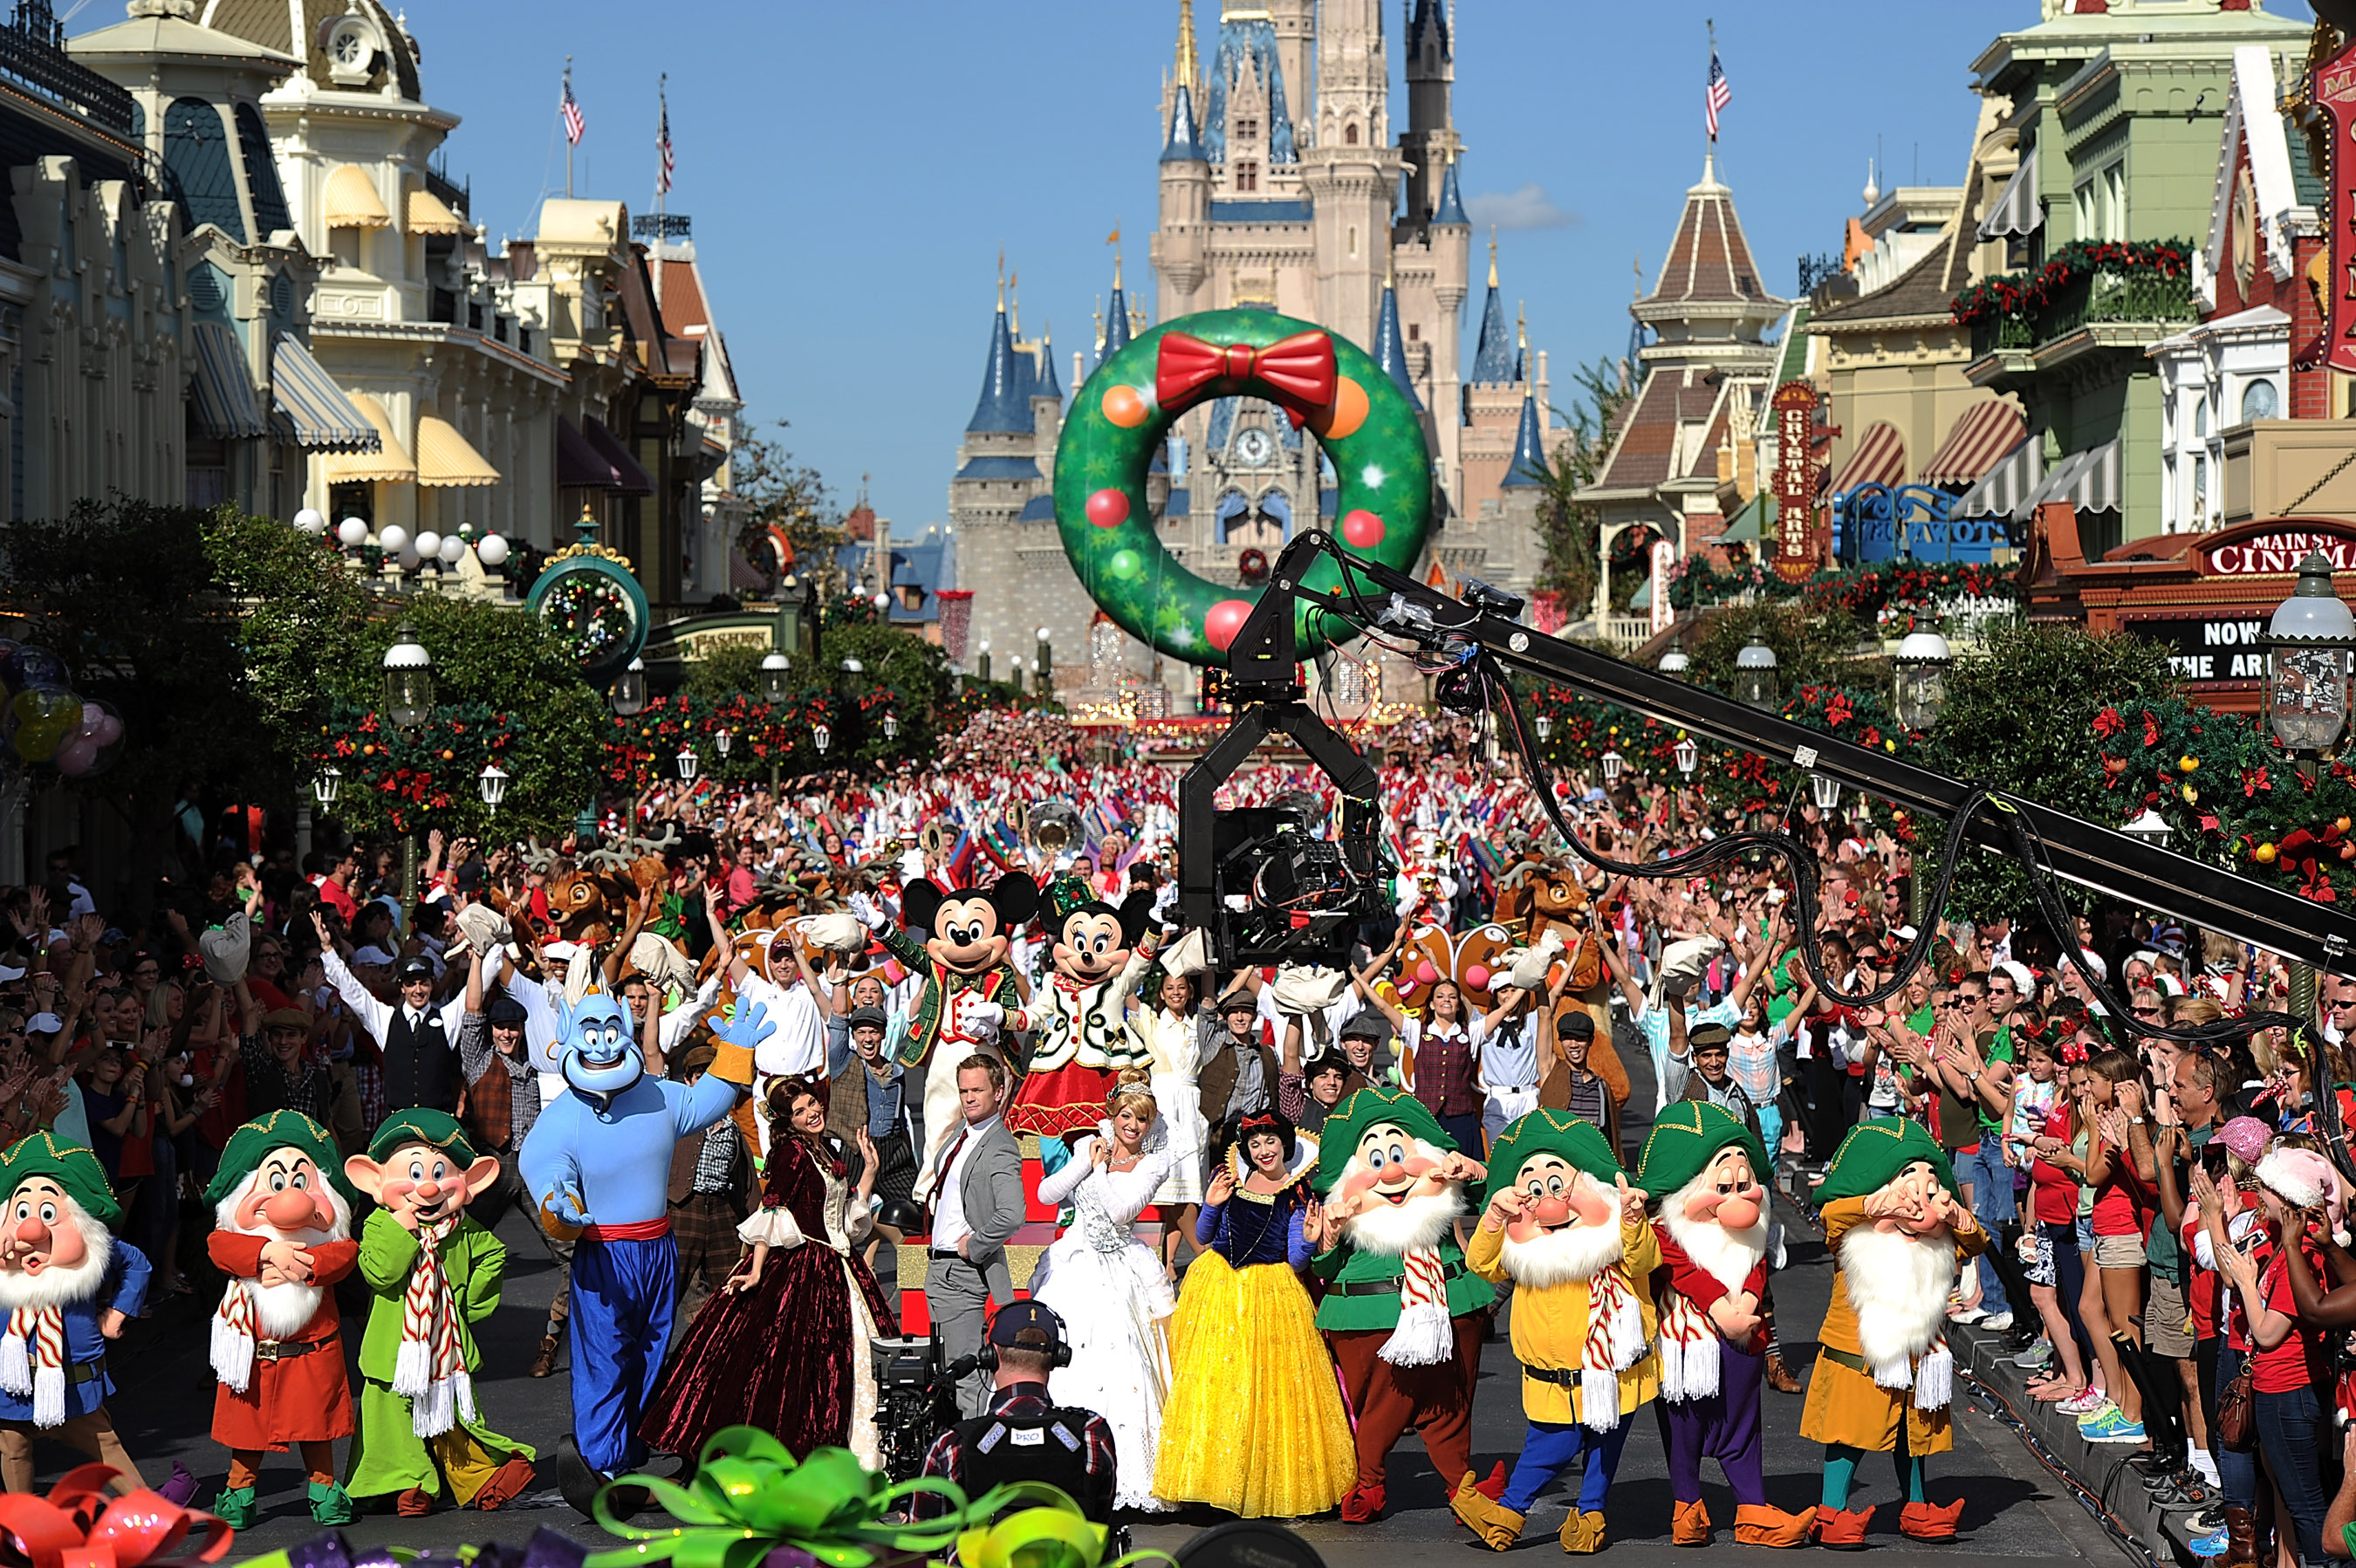 my memories at the disney world adventure Create a lifetime of memories on a dream family vacation with adventures by   on a hassle-free adventures by disney guided group vacation where your family .